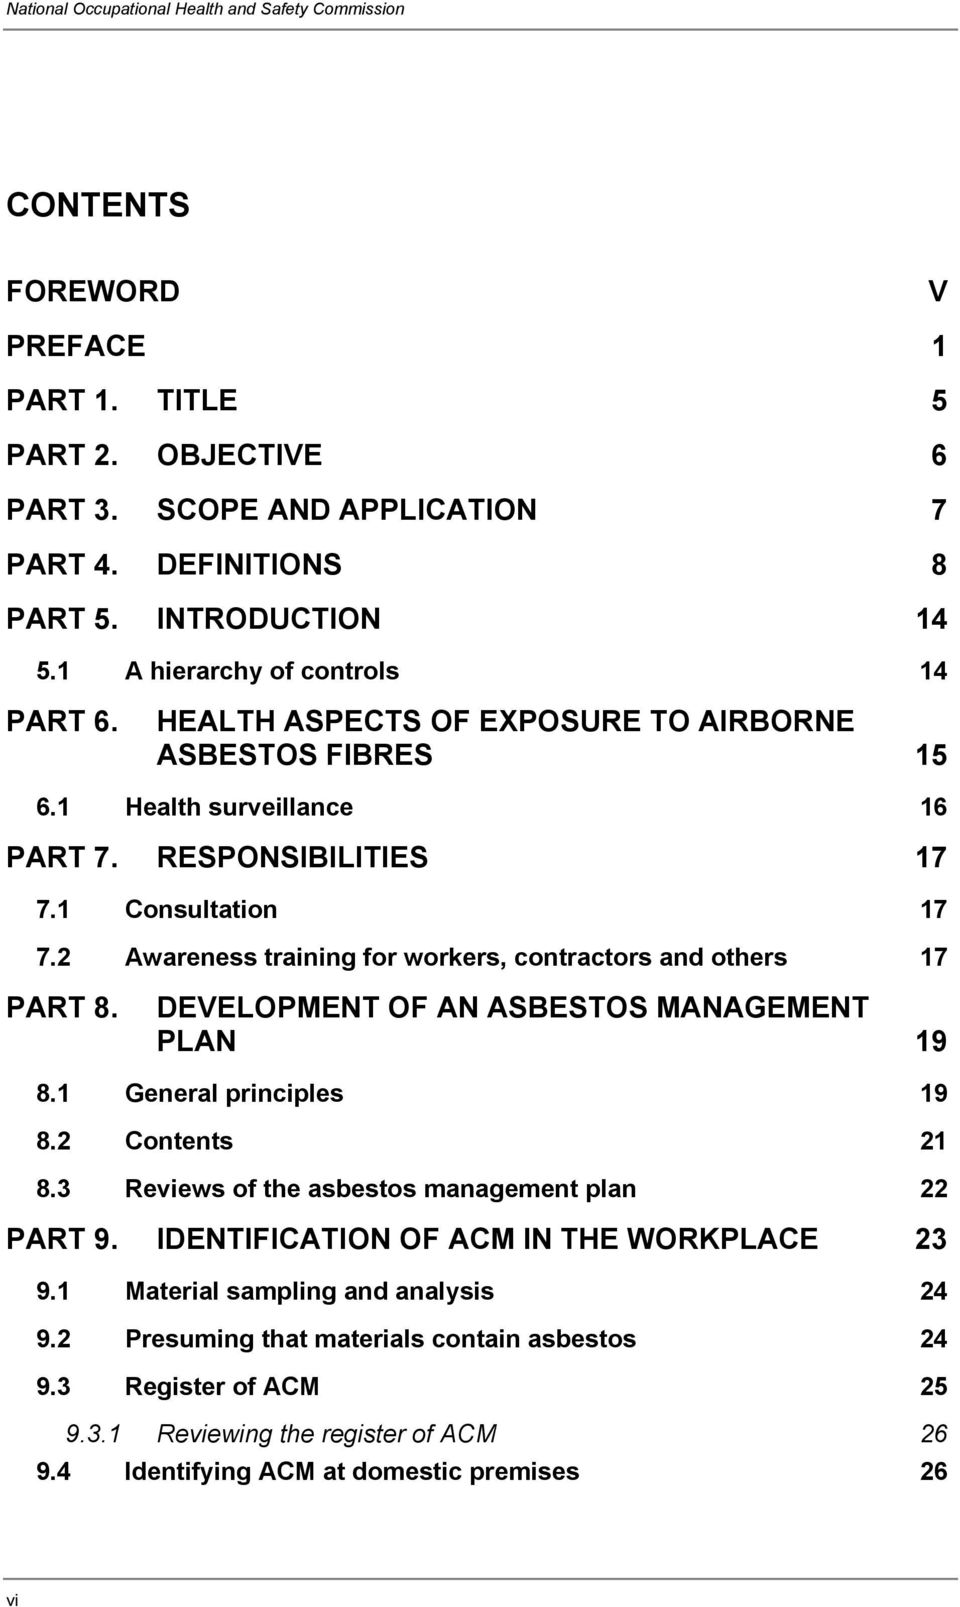 2 Awareness training for workers, contractors and others 17 PART 8. DEVELOPMENT OF AN ASBESTOS MANAGEMENT PLAN 19 8.1 General principles 19 8.2 Contents 21 8.